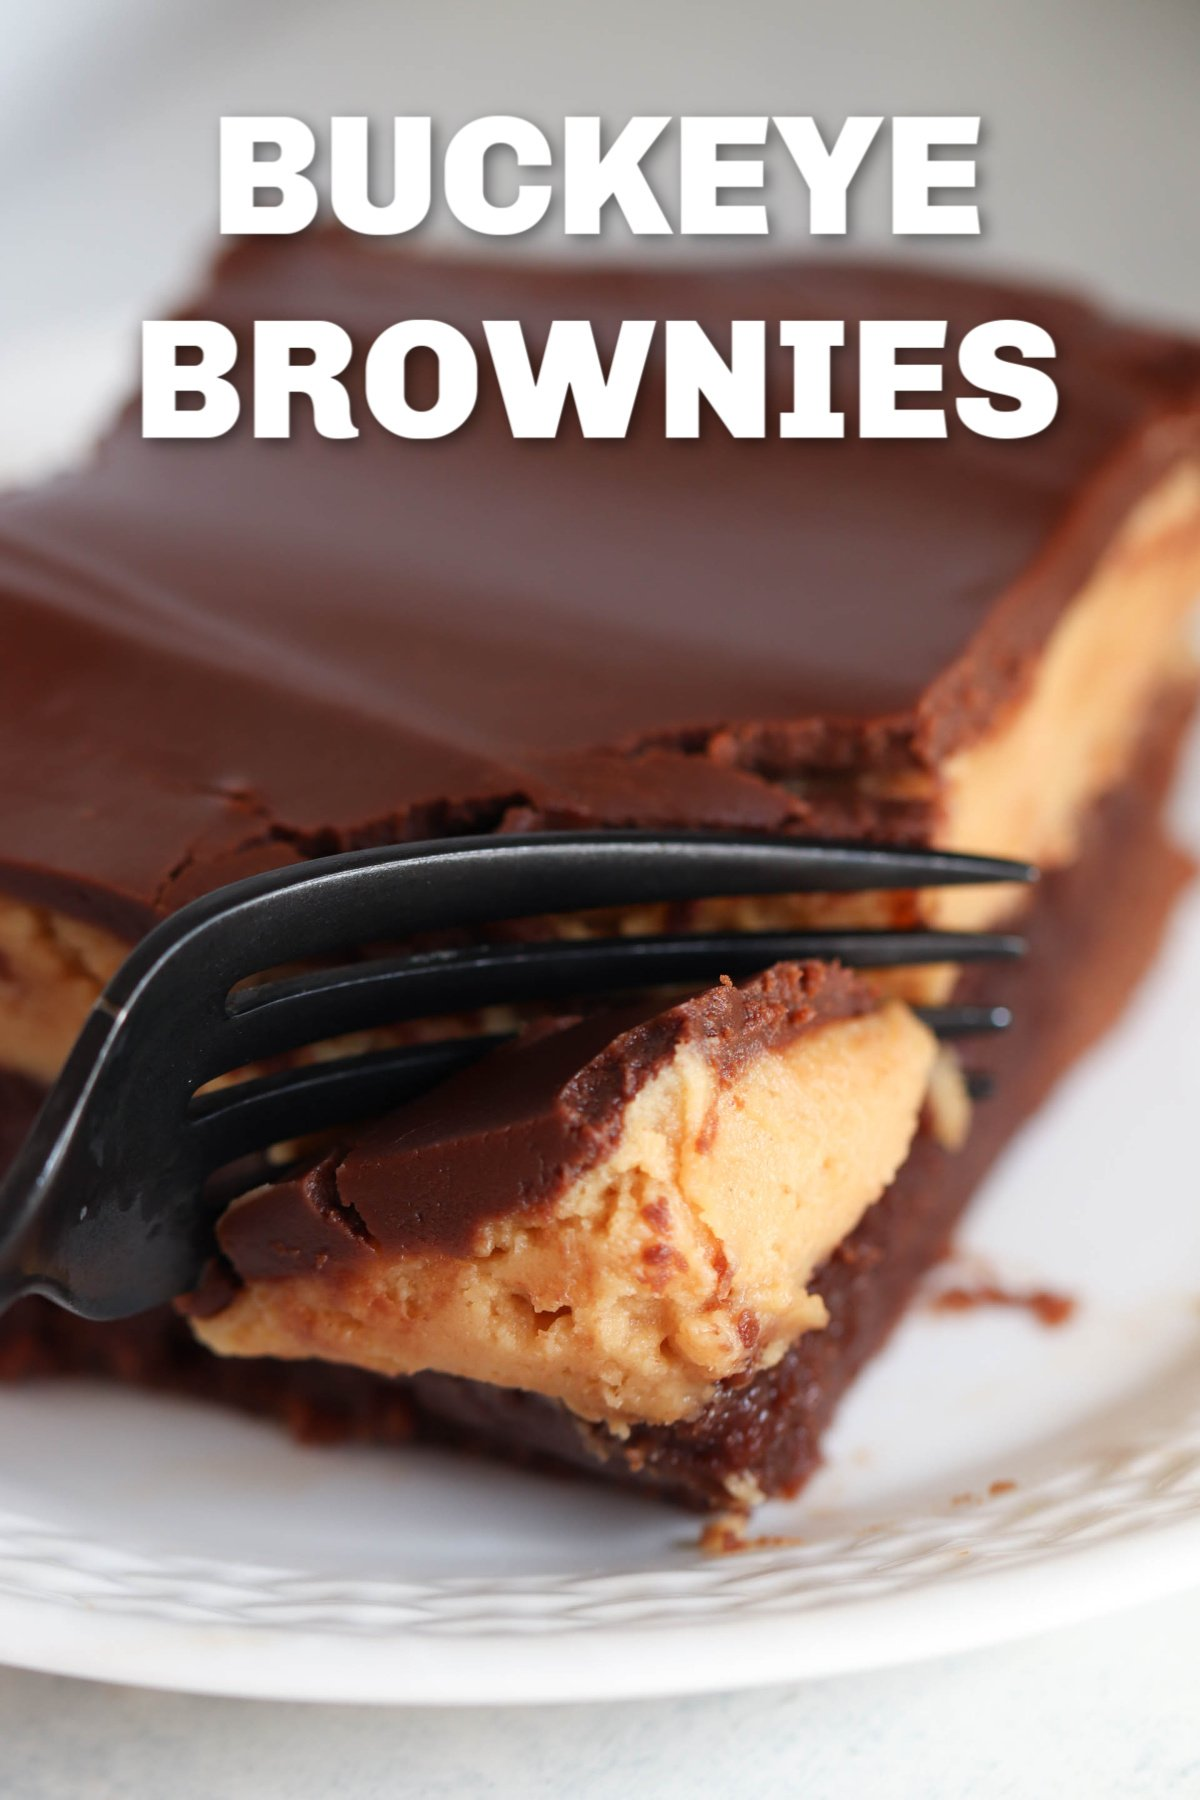 One Buckeye Brownie square on a white plate with a fork